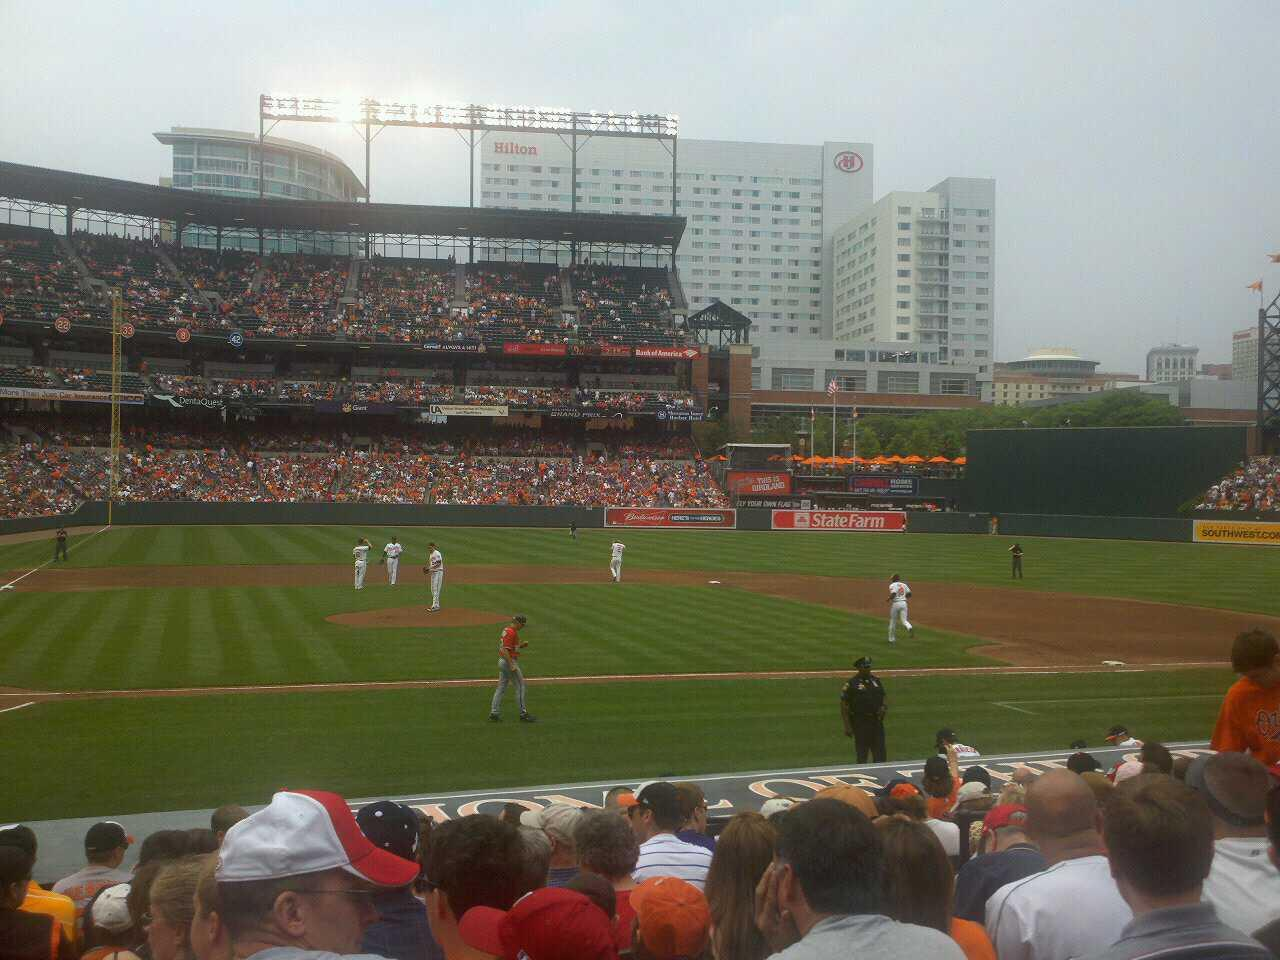 Oriole Park at Camden Yards Section 26 Row 12 Seat 4